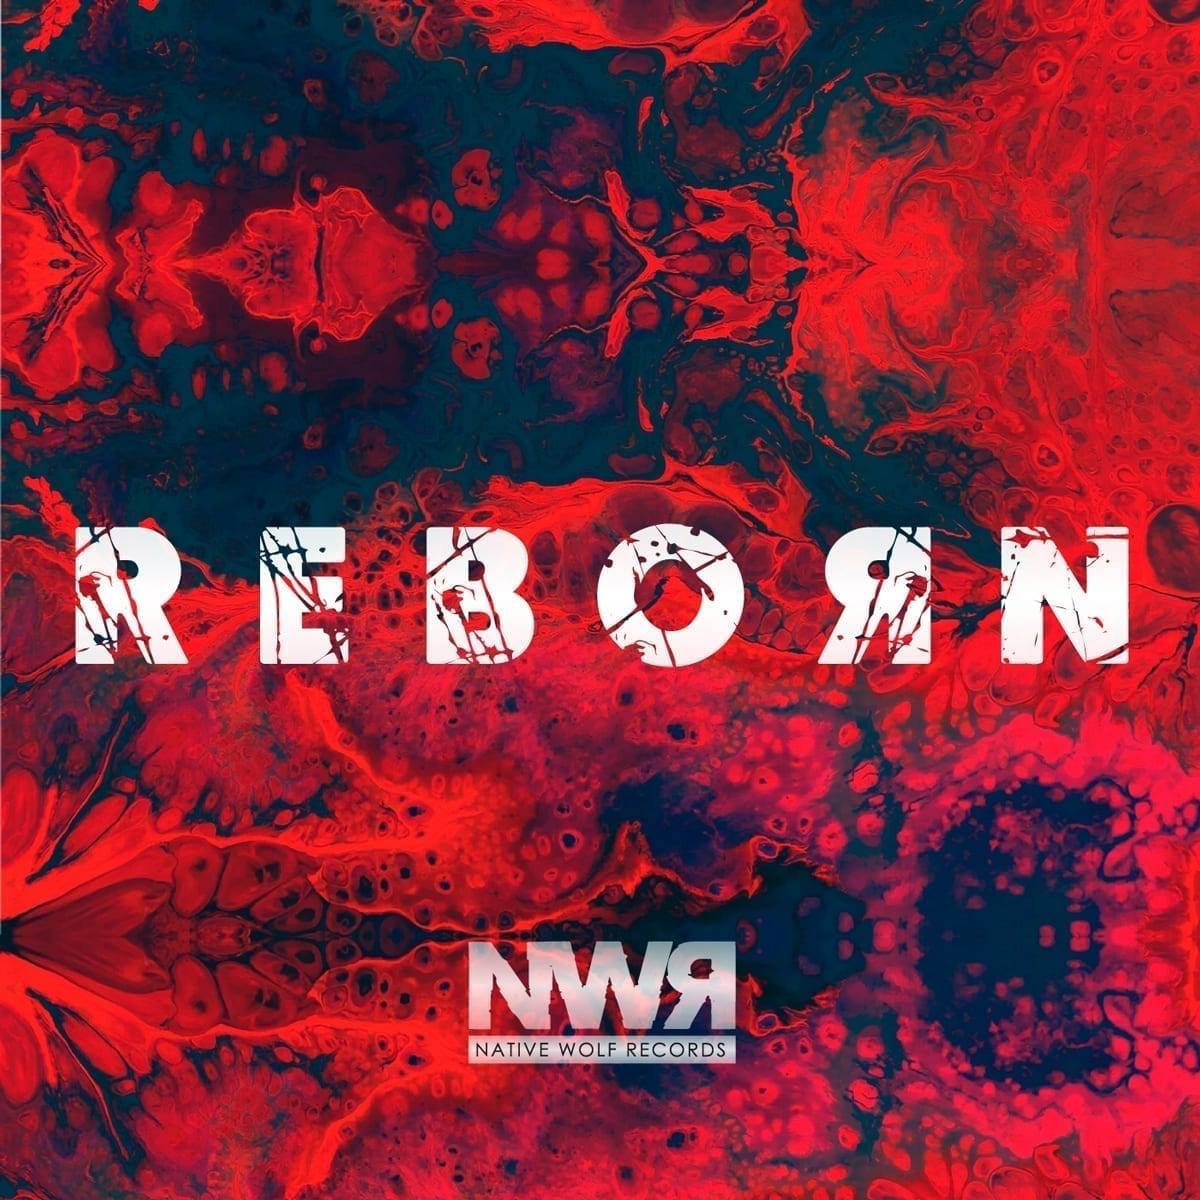 Native Wolf Records is Reborn, and presents a new VA